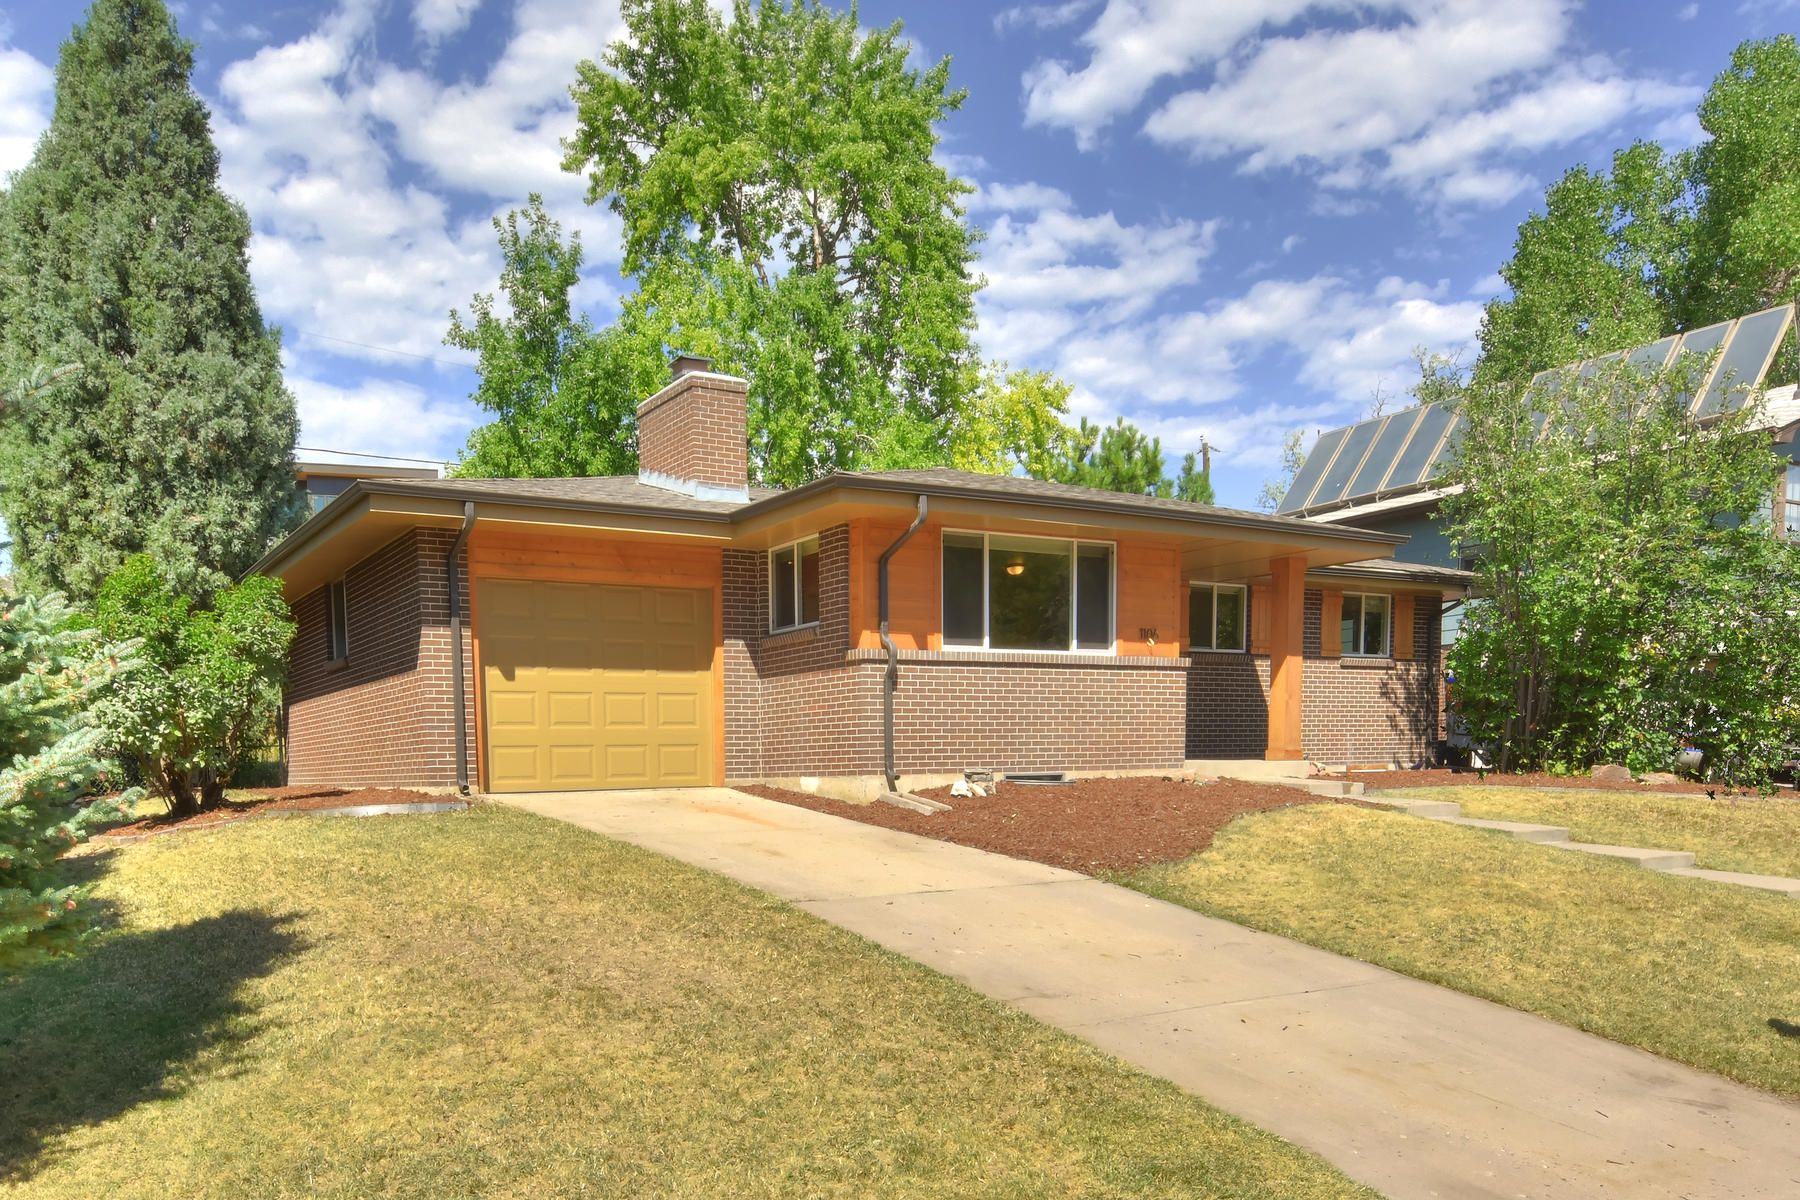 Single Family Homes for Sale at Light And Bright Updated Mid-Century Ranch 1106 N Jackson St Golden, Colorado 80403 United States